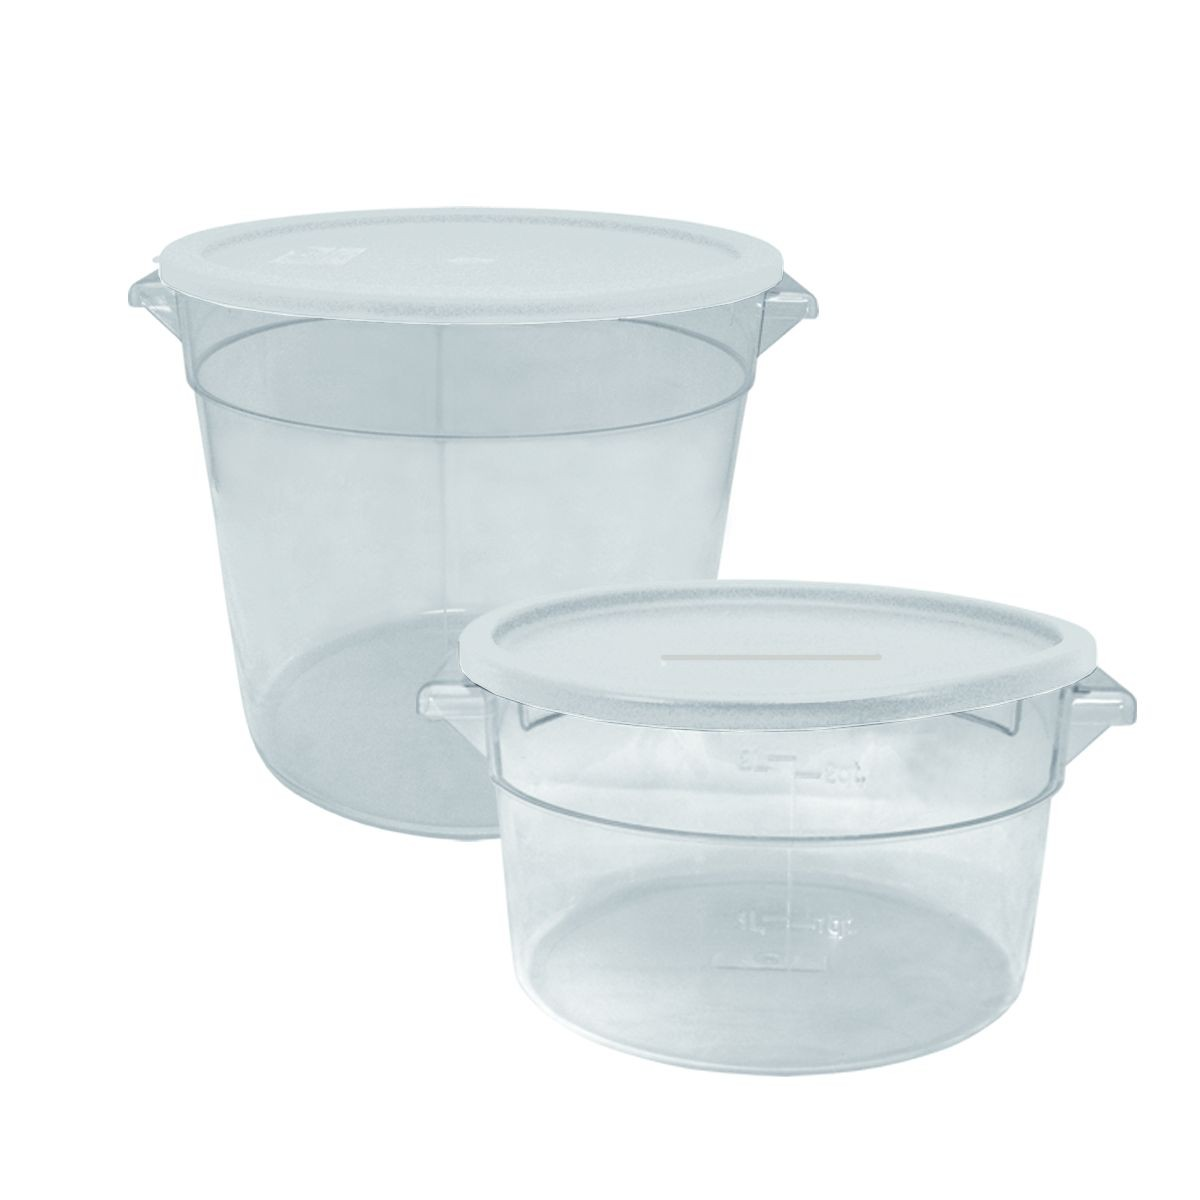 Update International SCR-22PC Round Polycarbonate 22 Qt. Storage Container